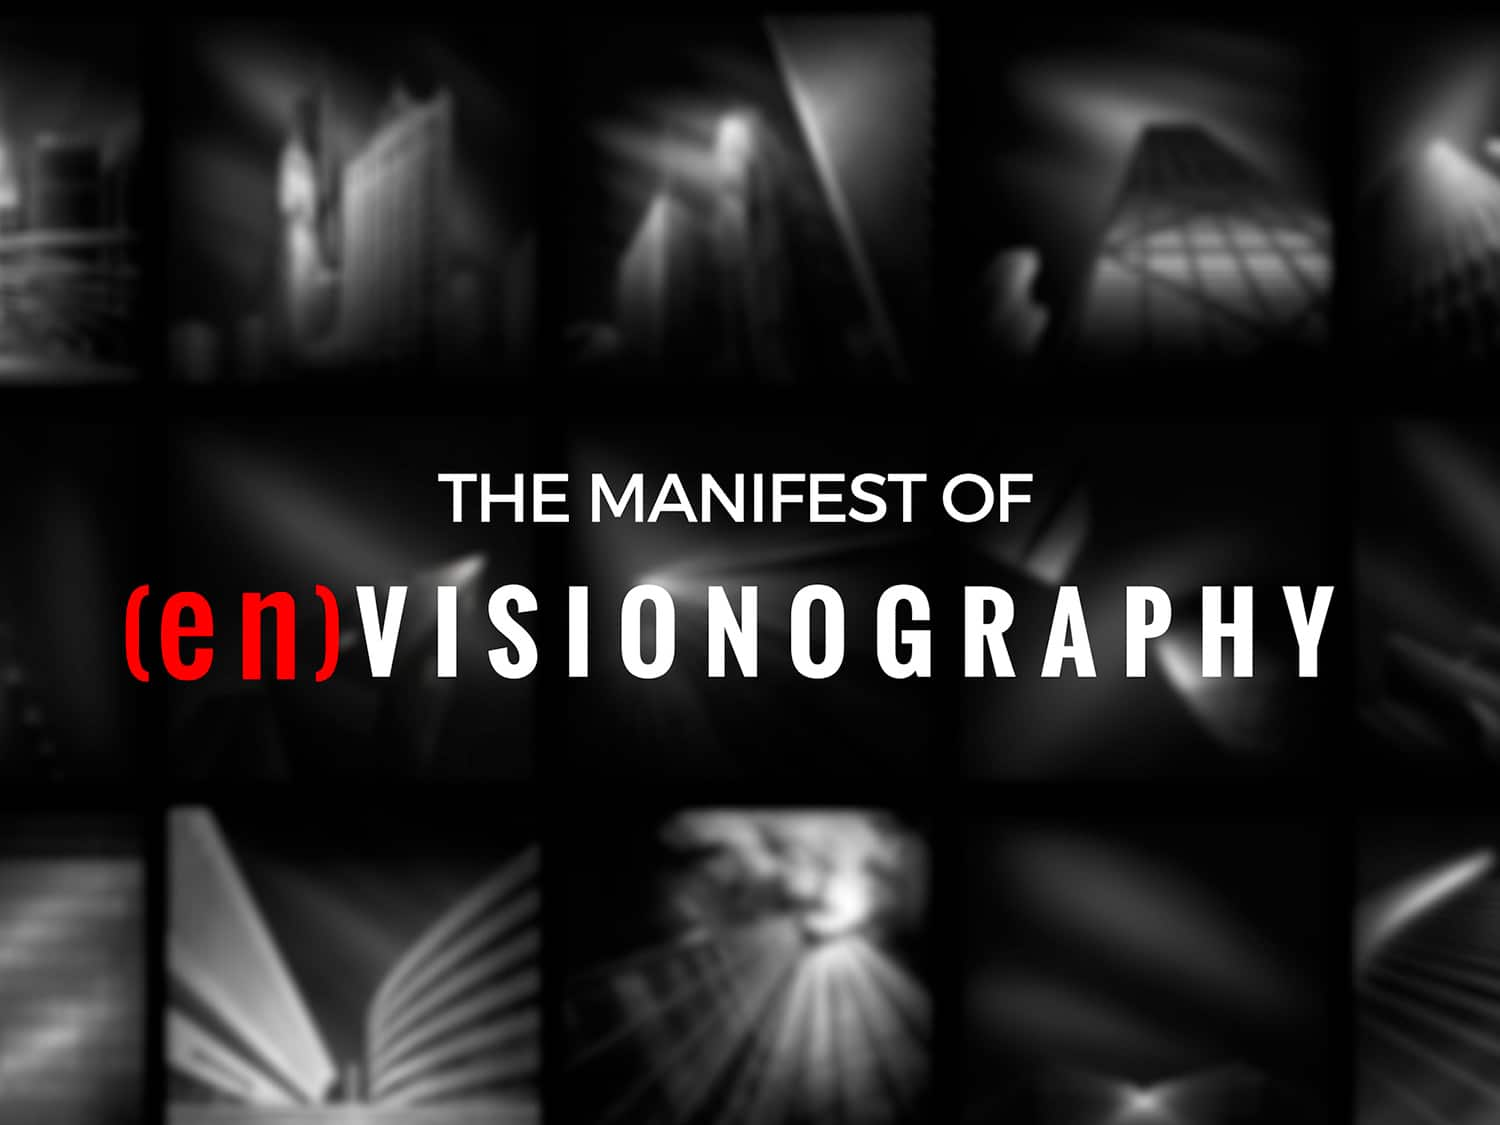 The manifest of enVisionography